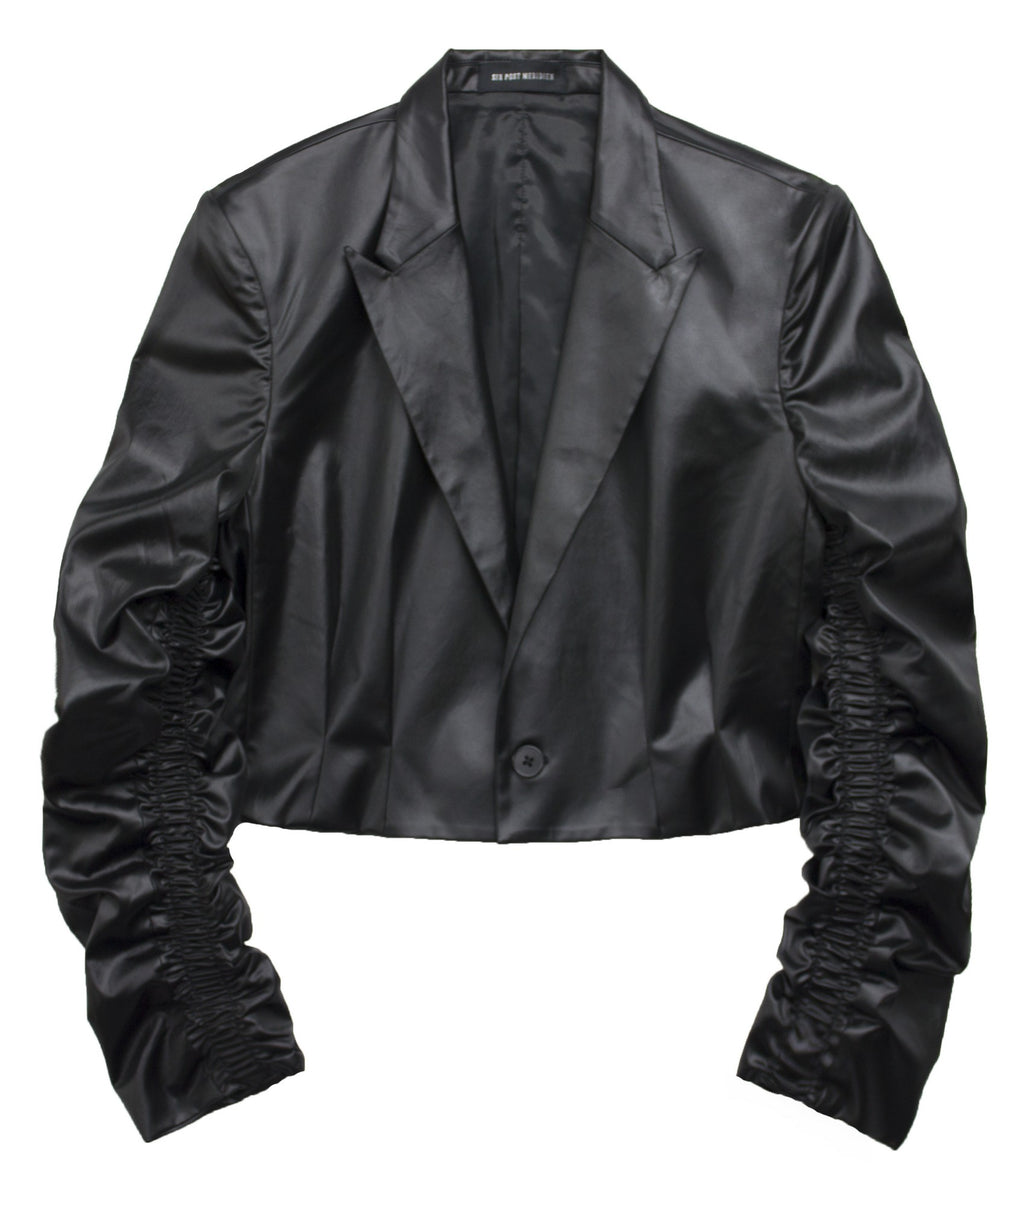 ショート丈ブレザー / Cropped blazer with sleeve design